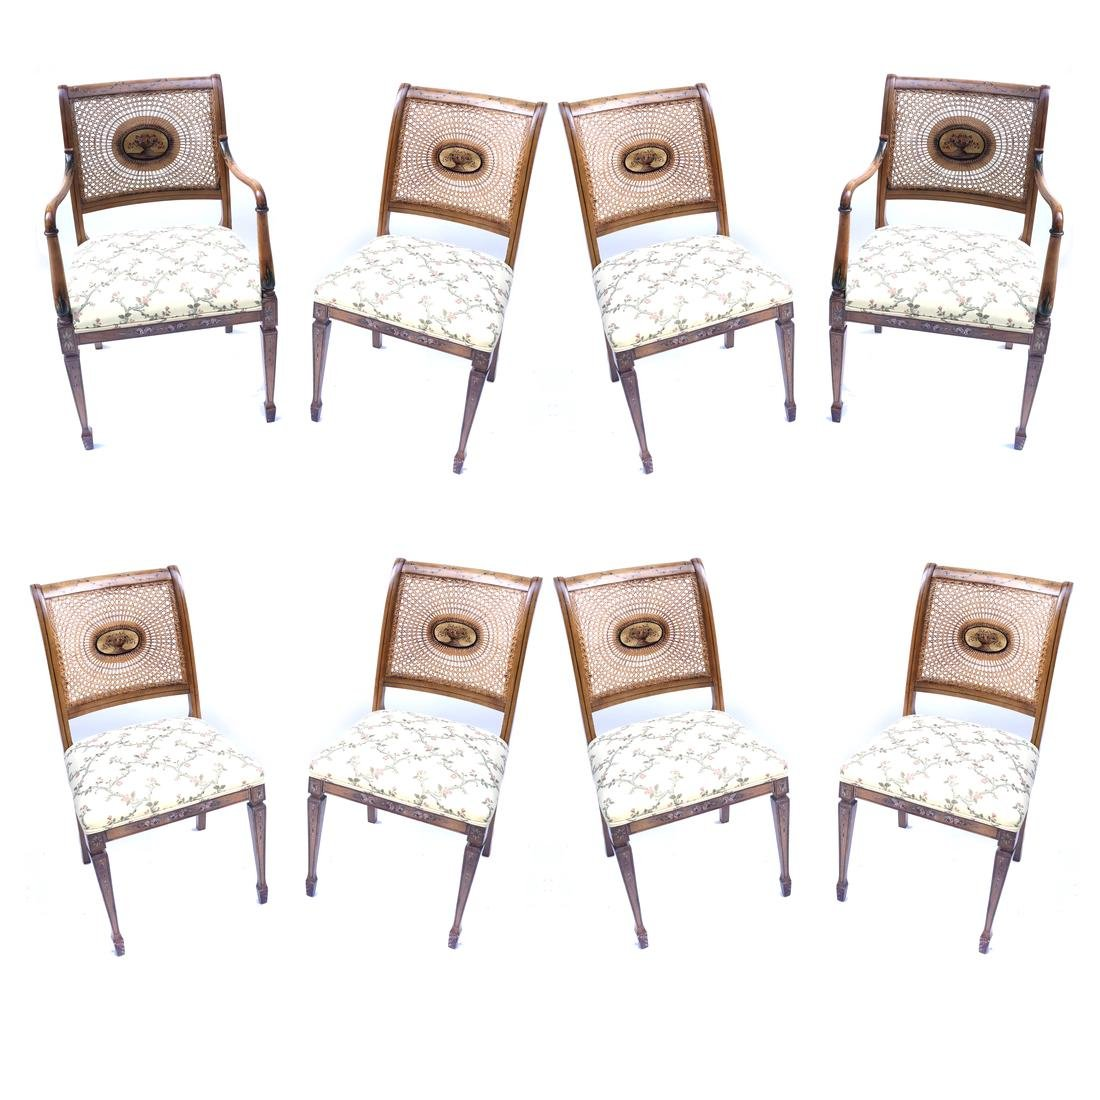 Set of 8 Adams-Style Dining Chairs